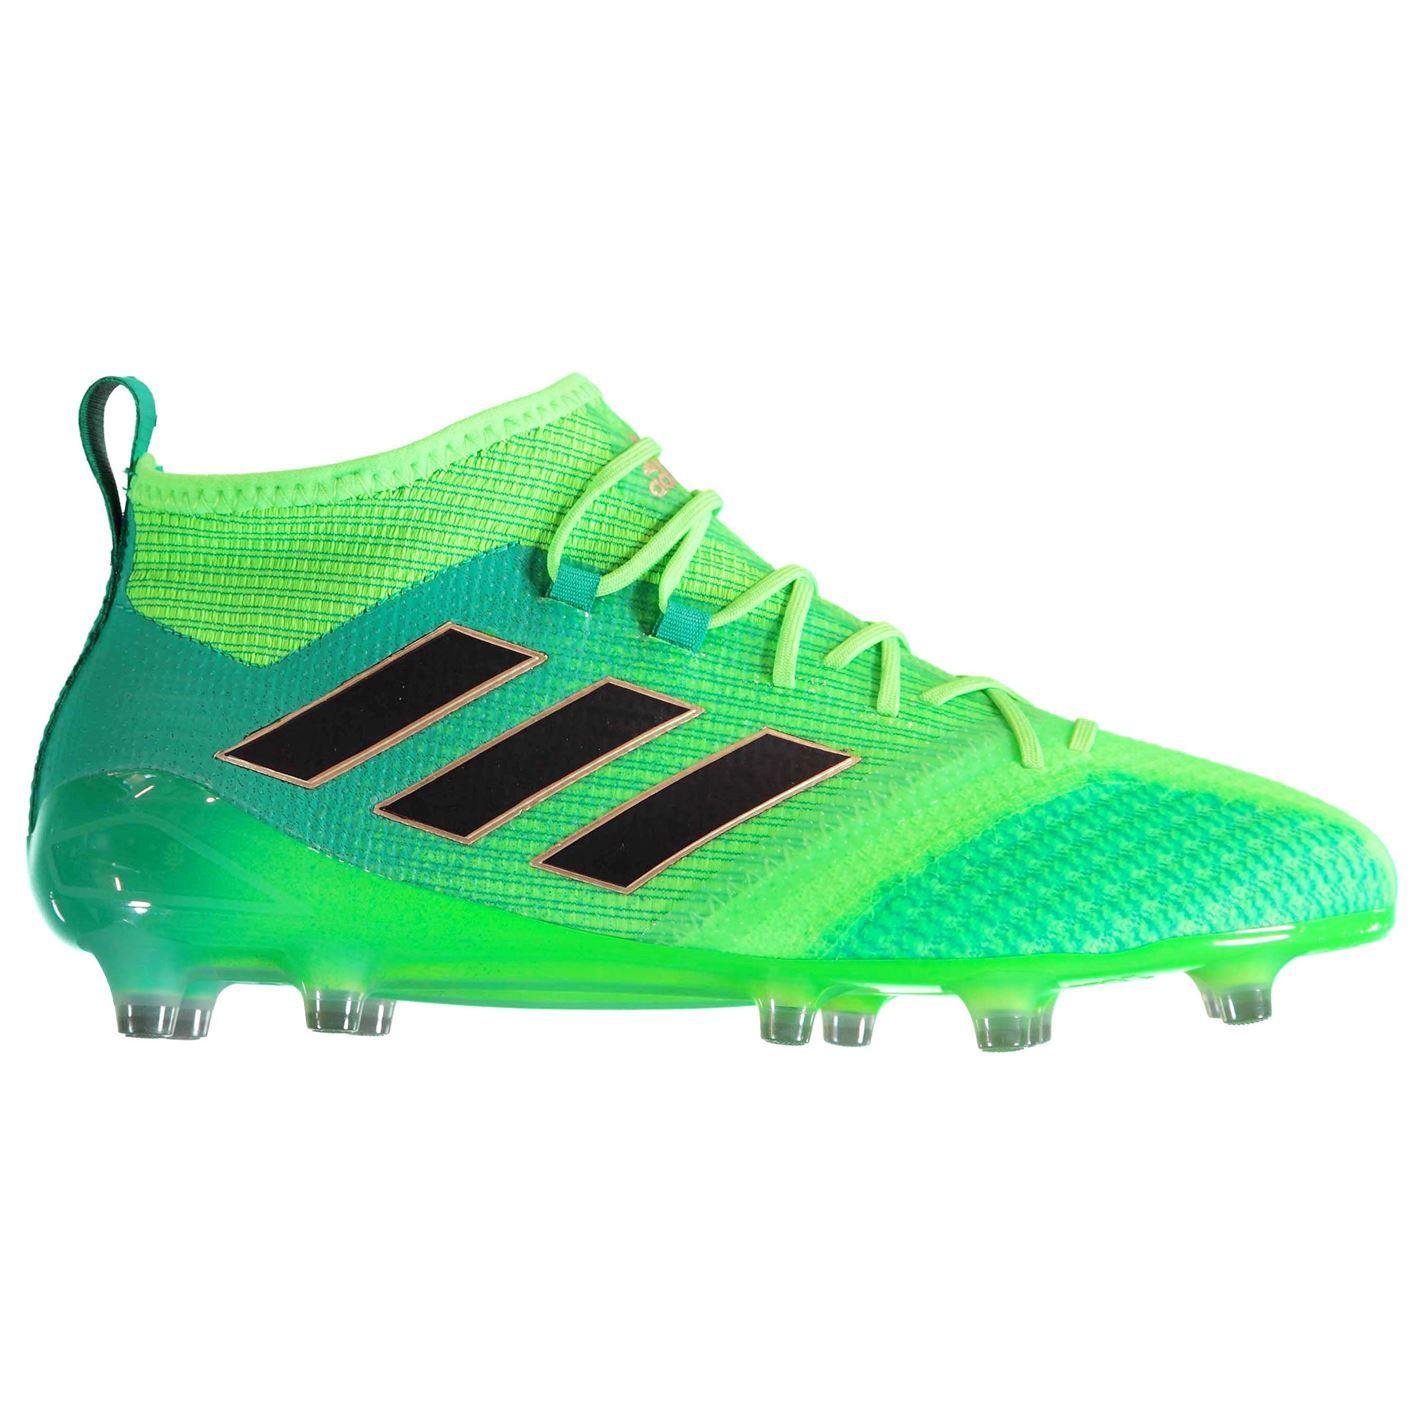 ... adidas Ace 17.1 Primeknit Firm Ground Football Boots Mens Green Soccer  Cleats ... f536cd3bbdb9b